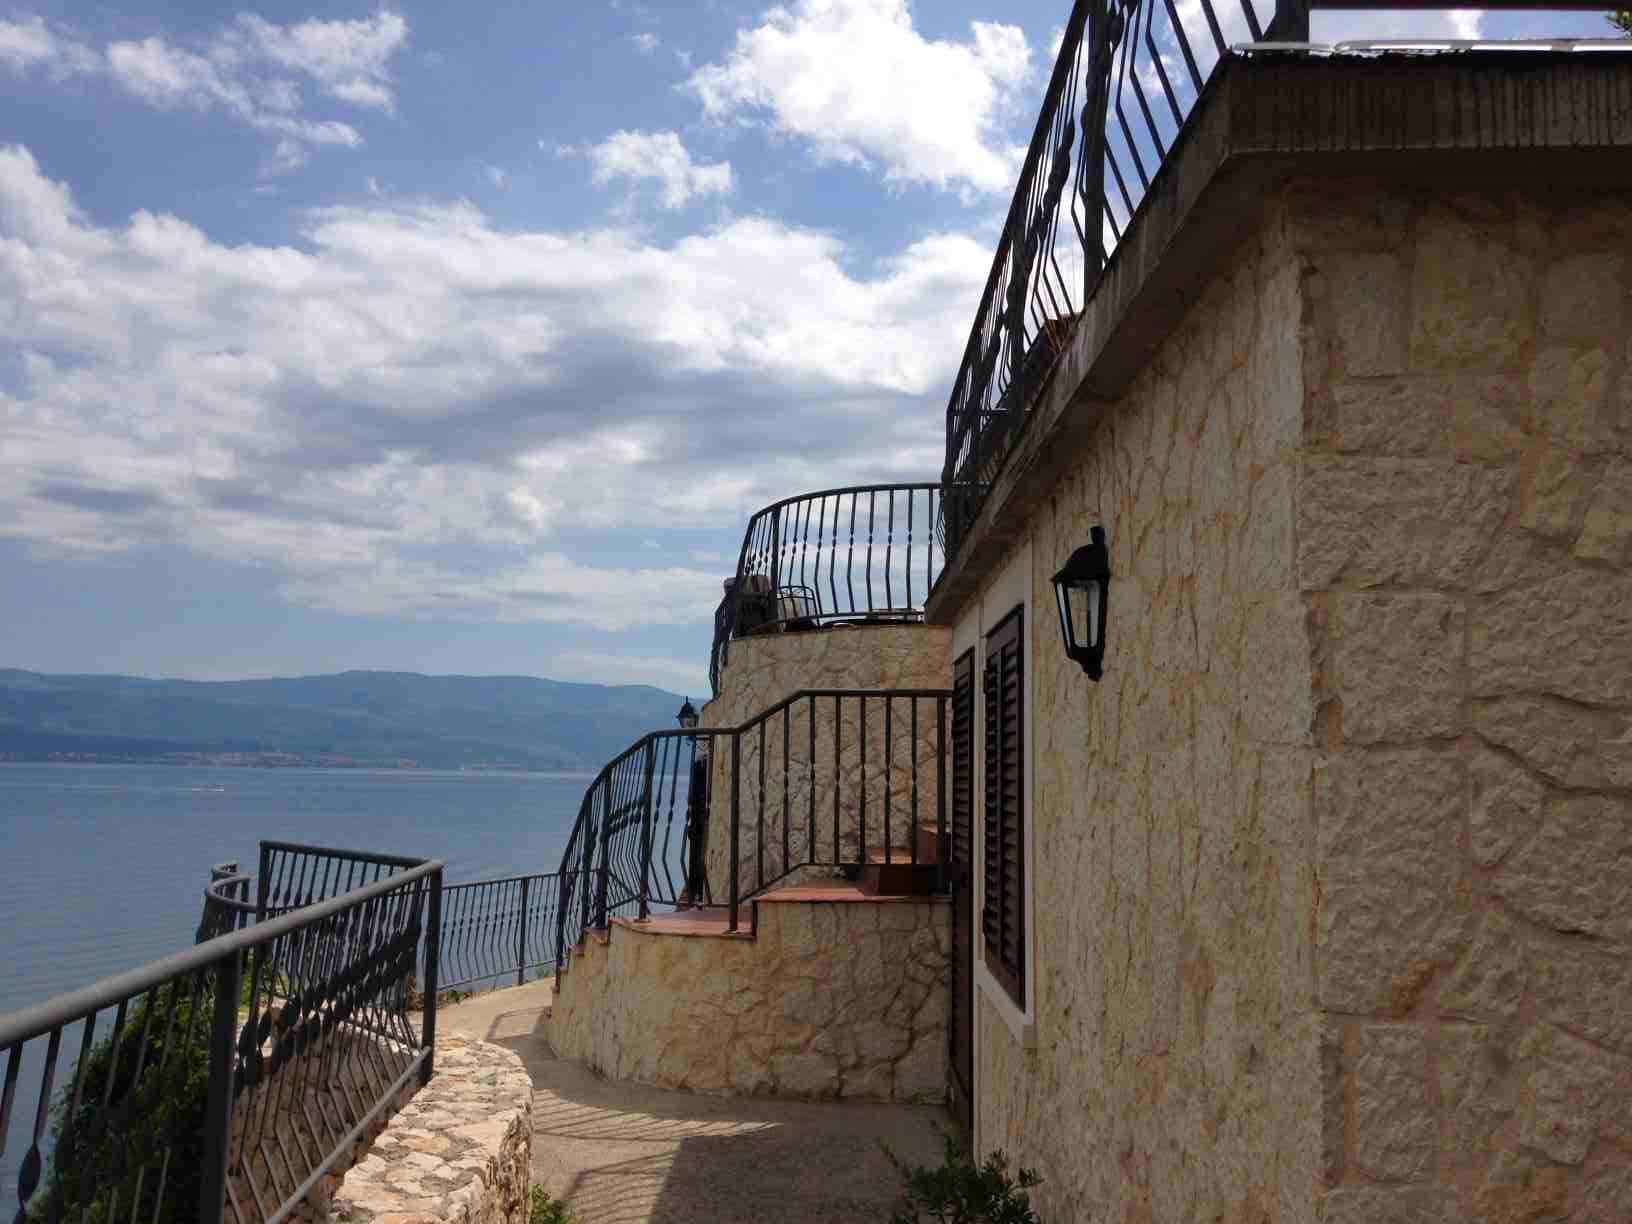 Here is a picture of the house on the rock cliffs for sale with panoramic views of the island of Krk, Croatia